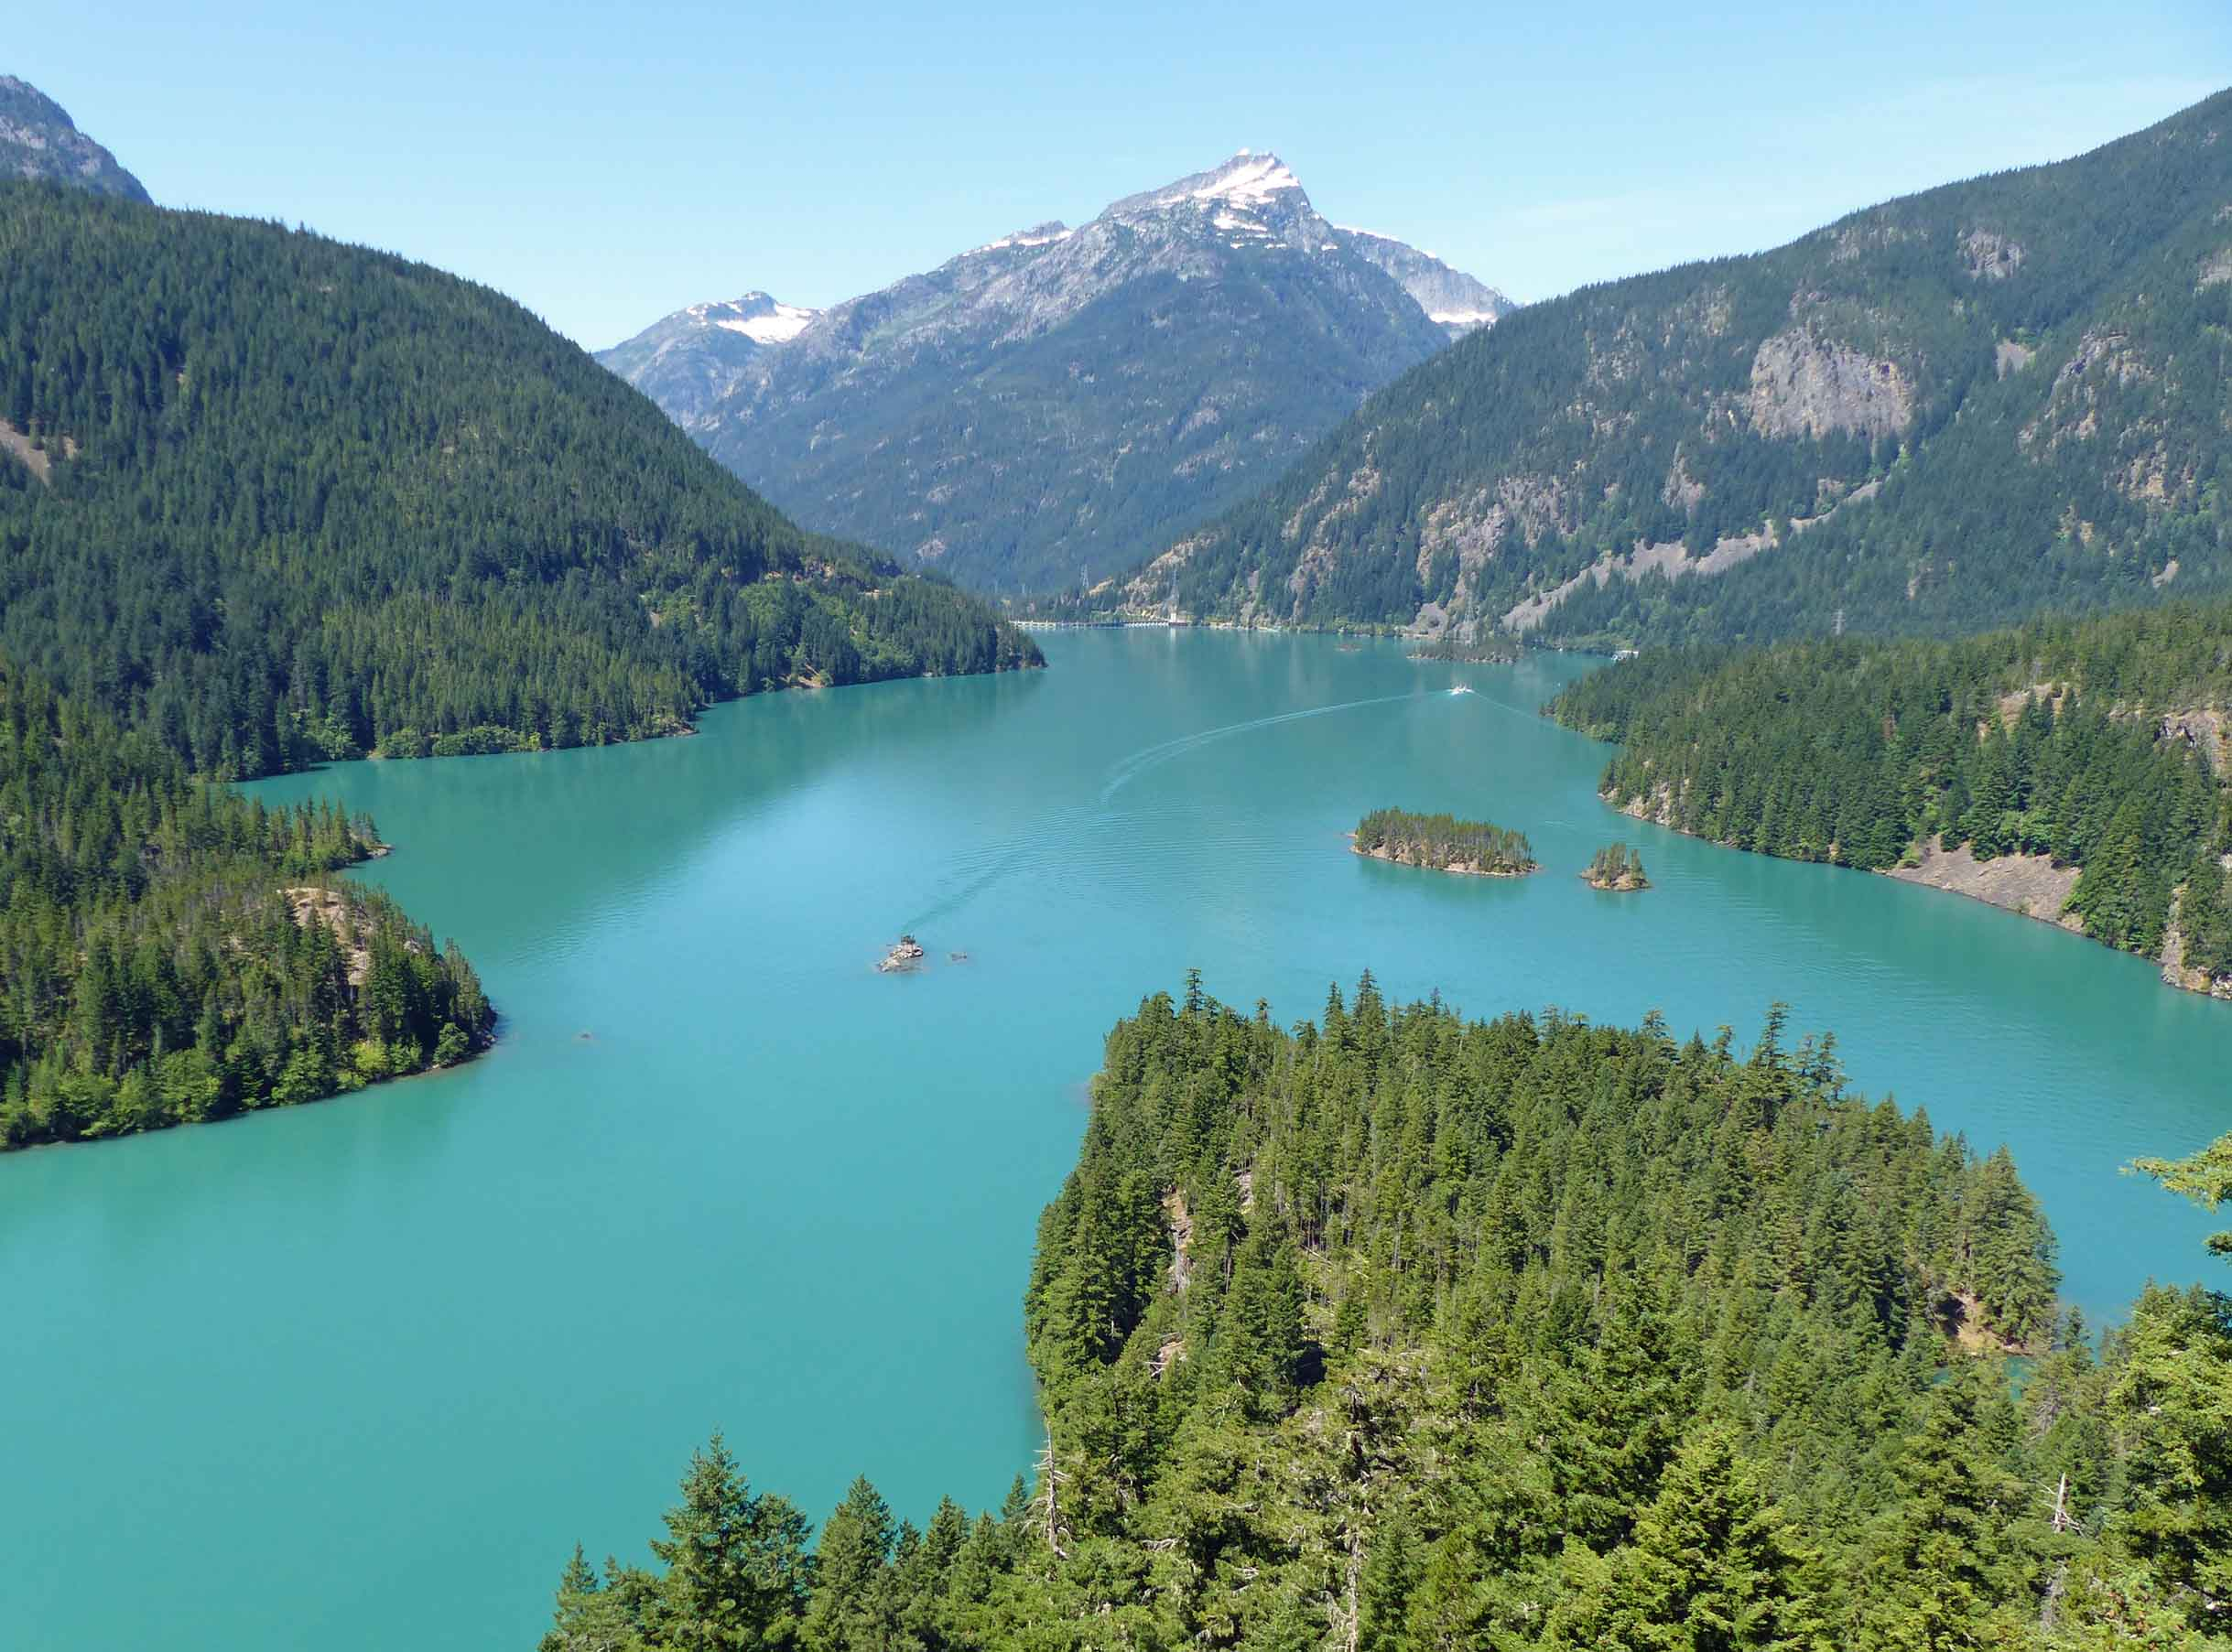 Looking down at turquoise lake among pine covered mountains